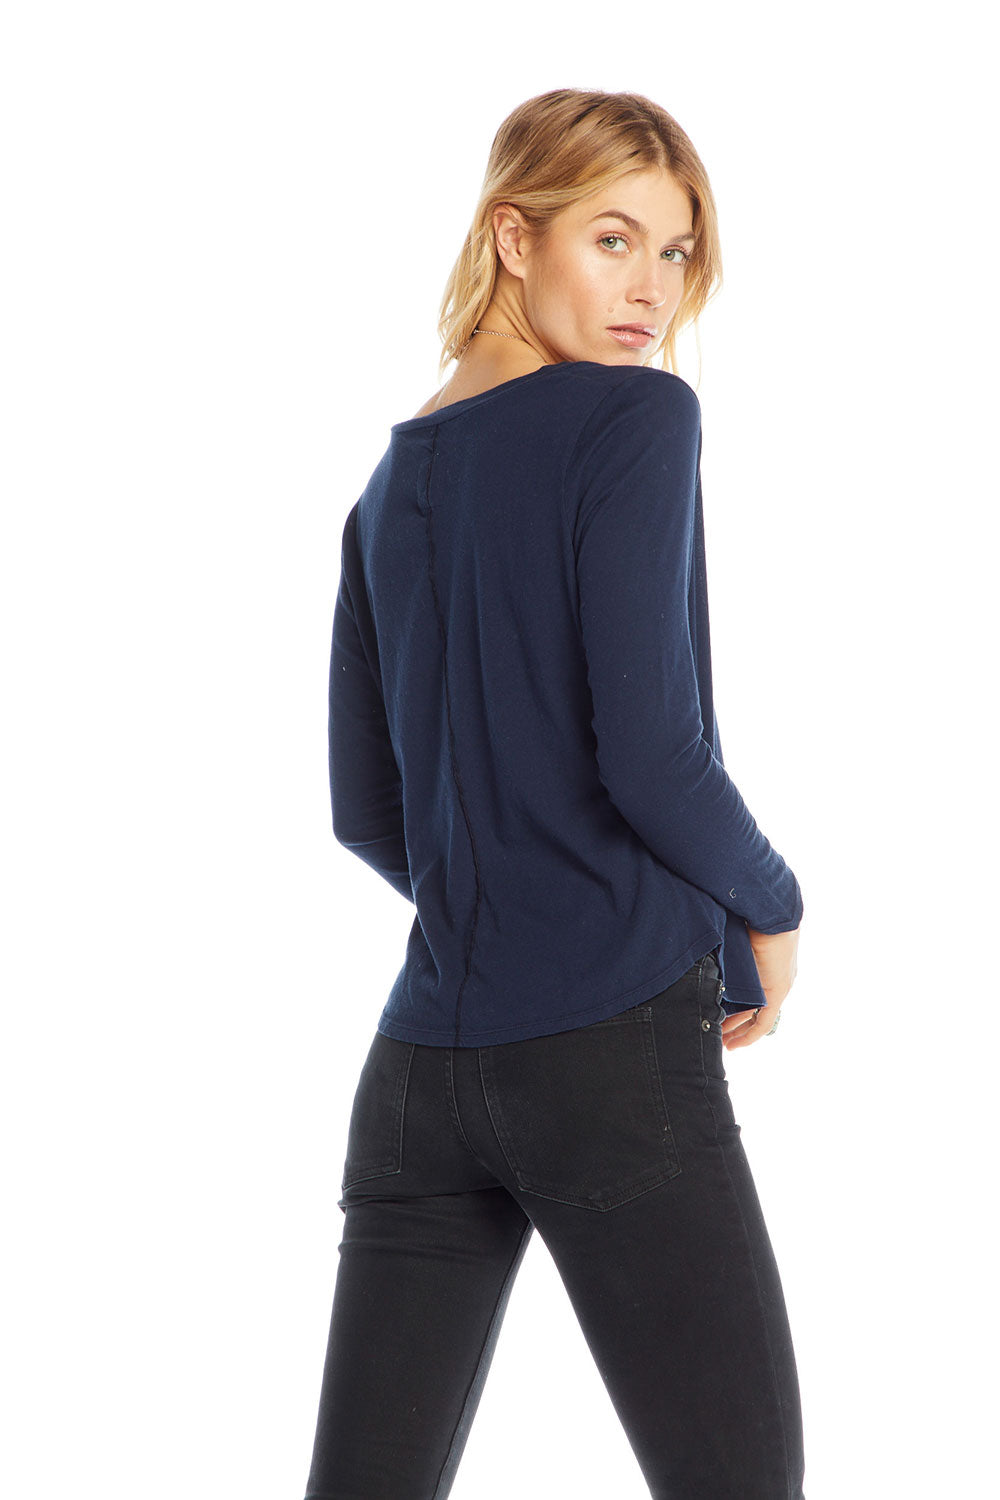 Cotton Basics Long Sleeve V-neck Seamed Back Pocket Tee WOMENS - chaserbrand